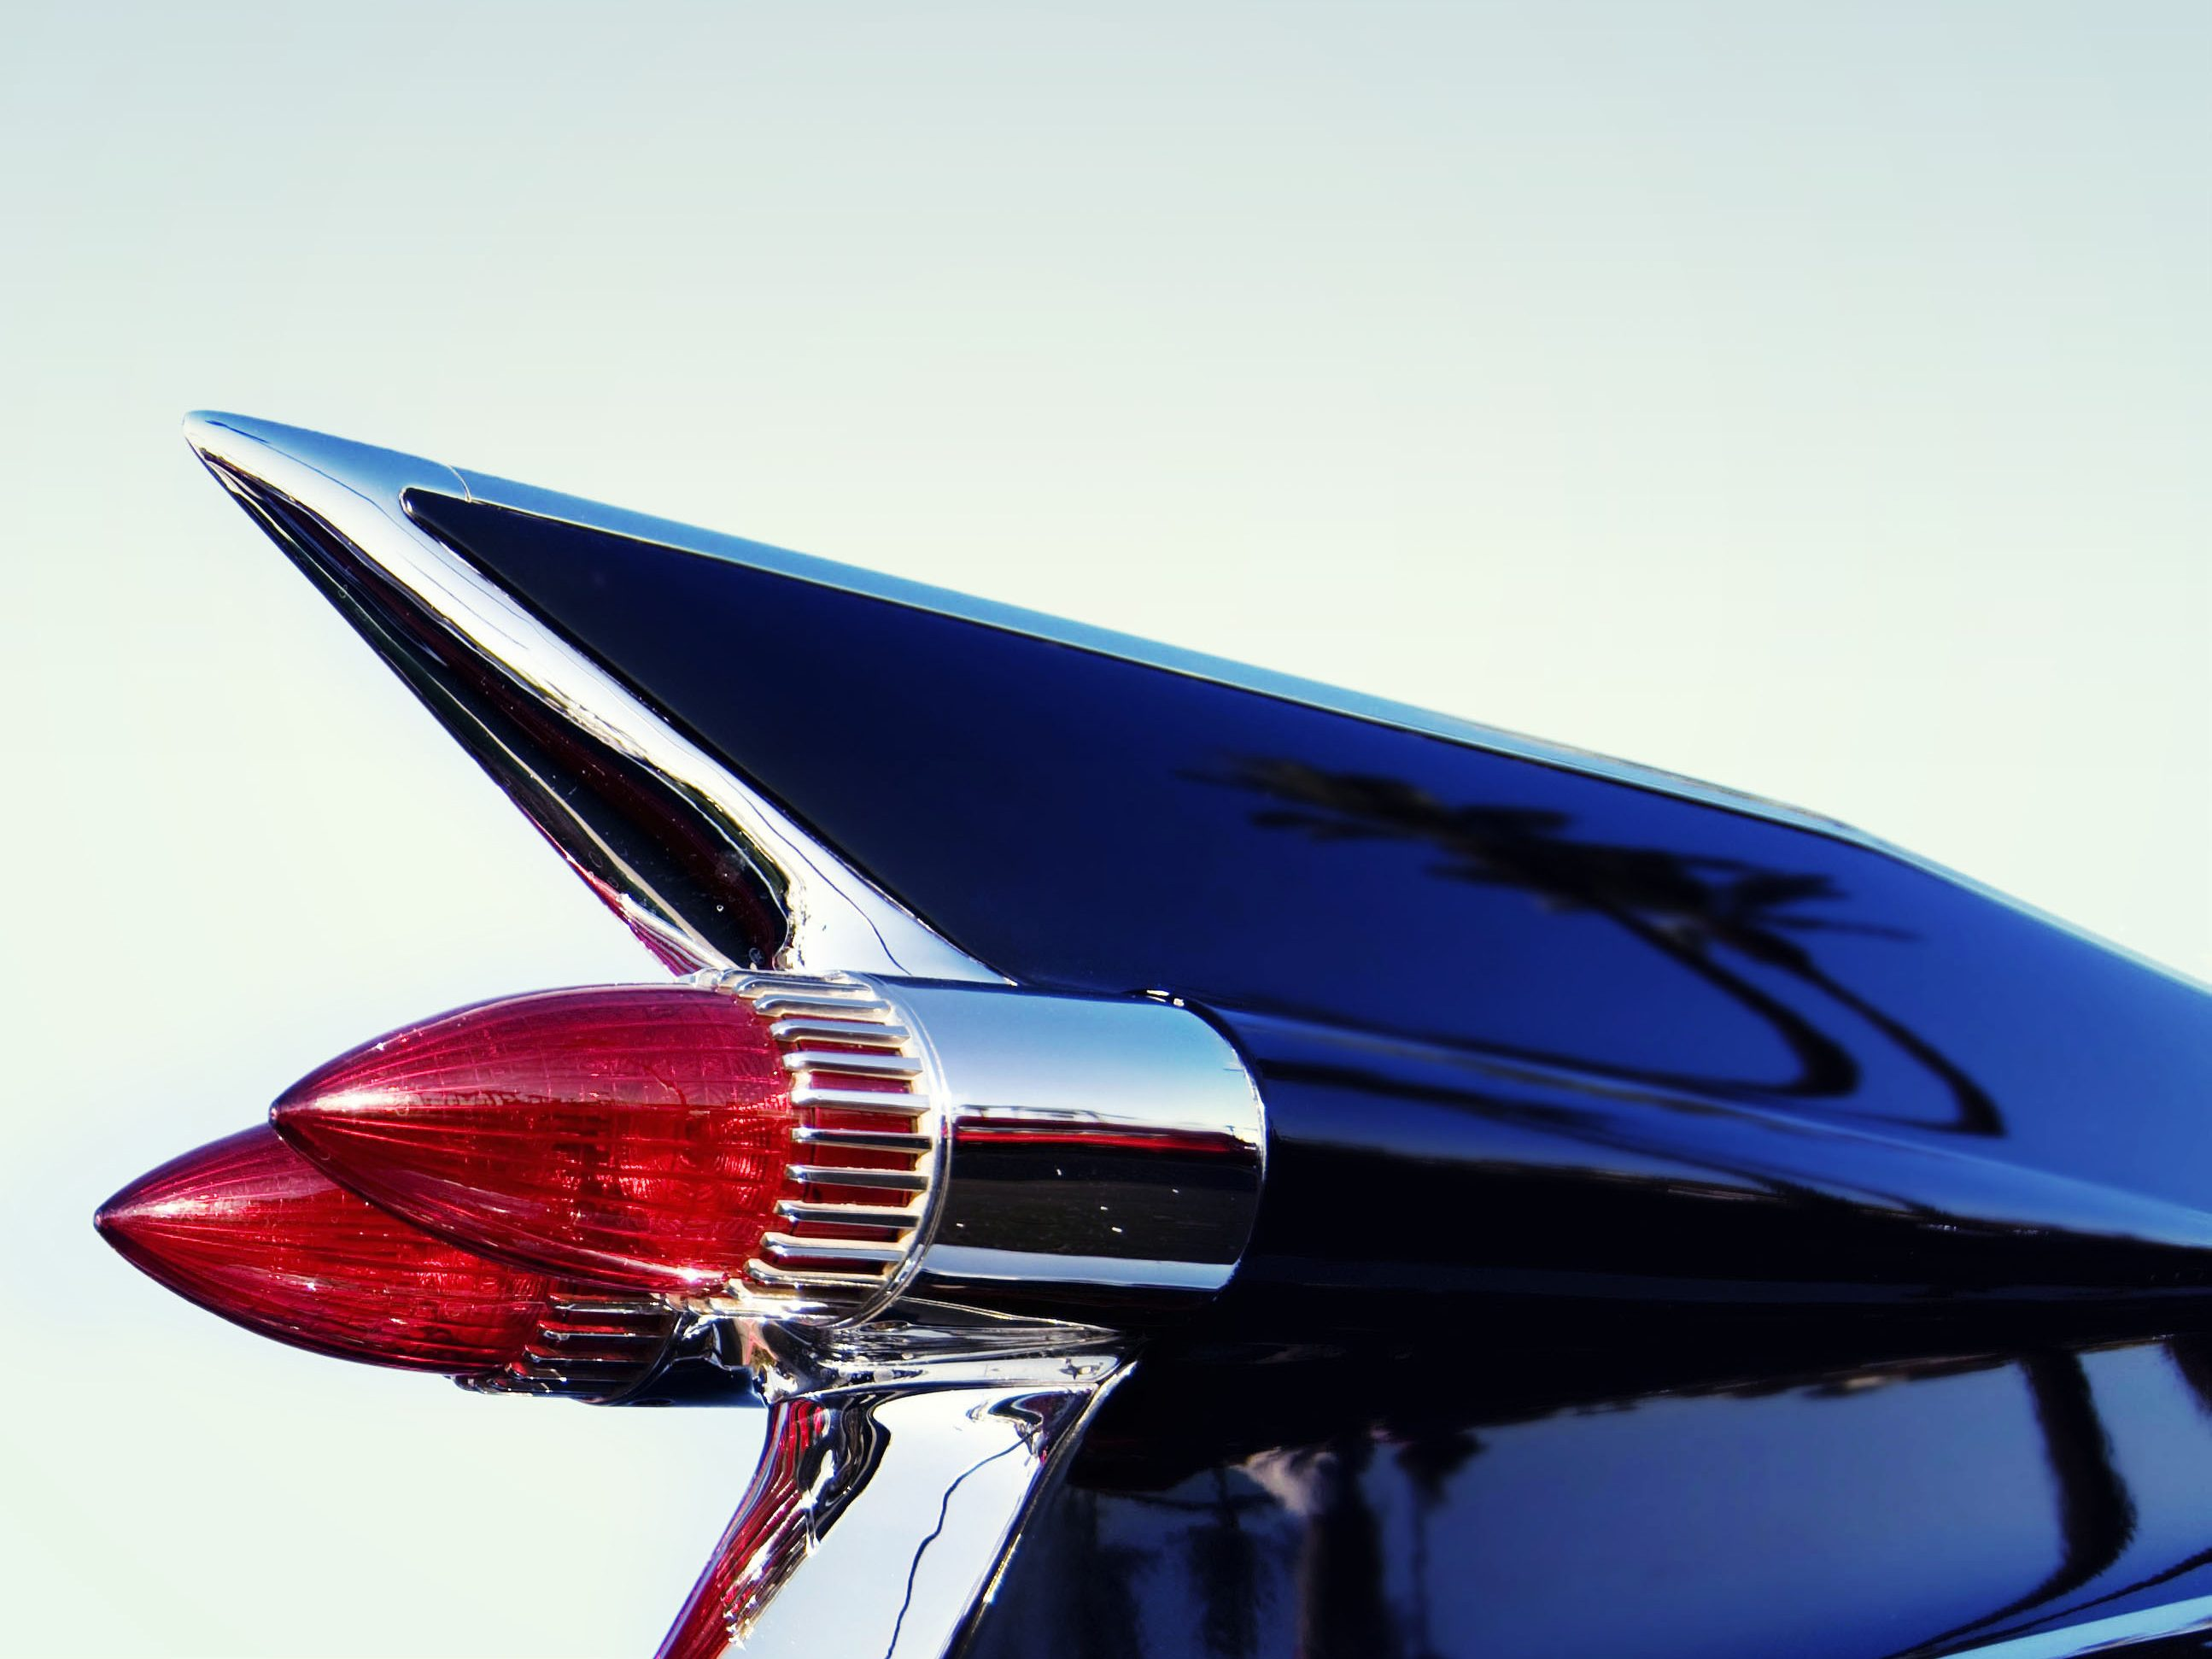 How to accessorize a classic car